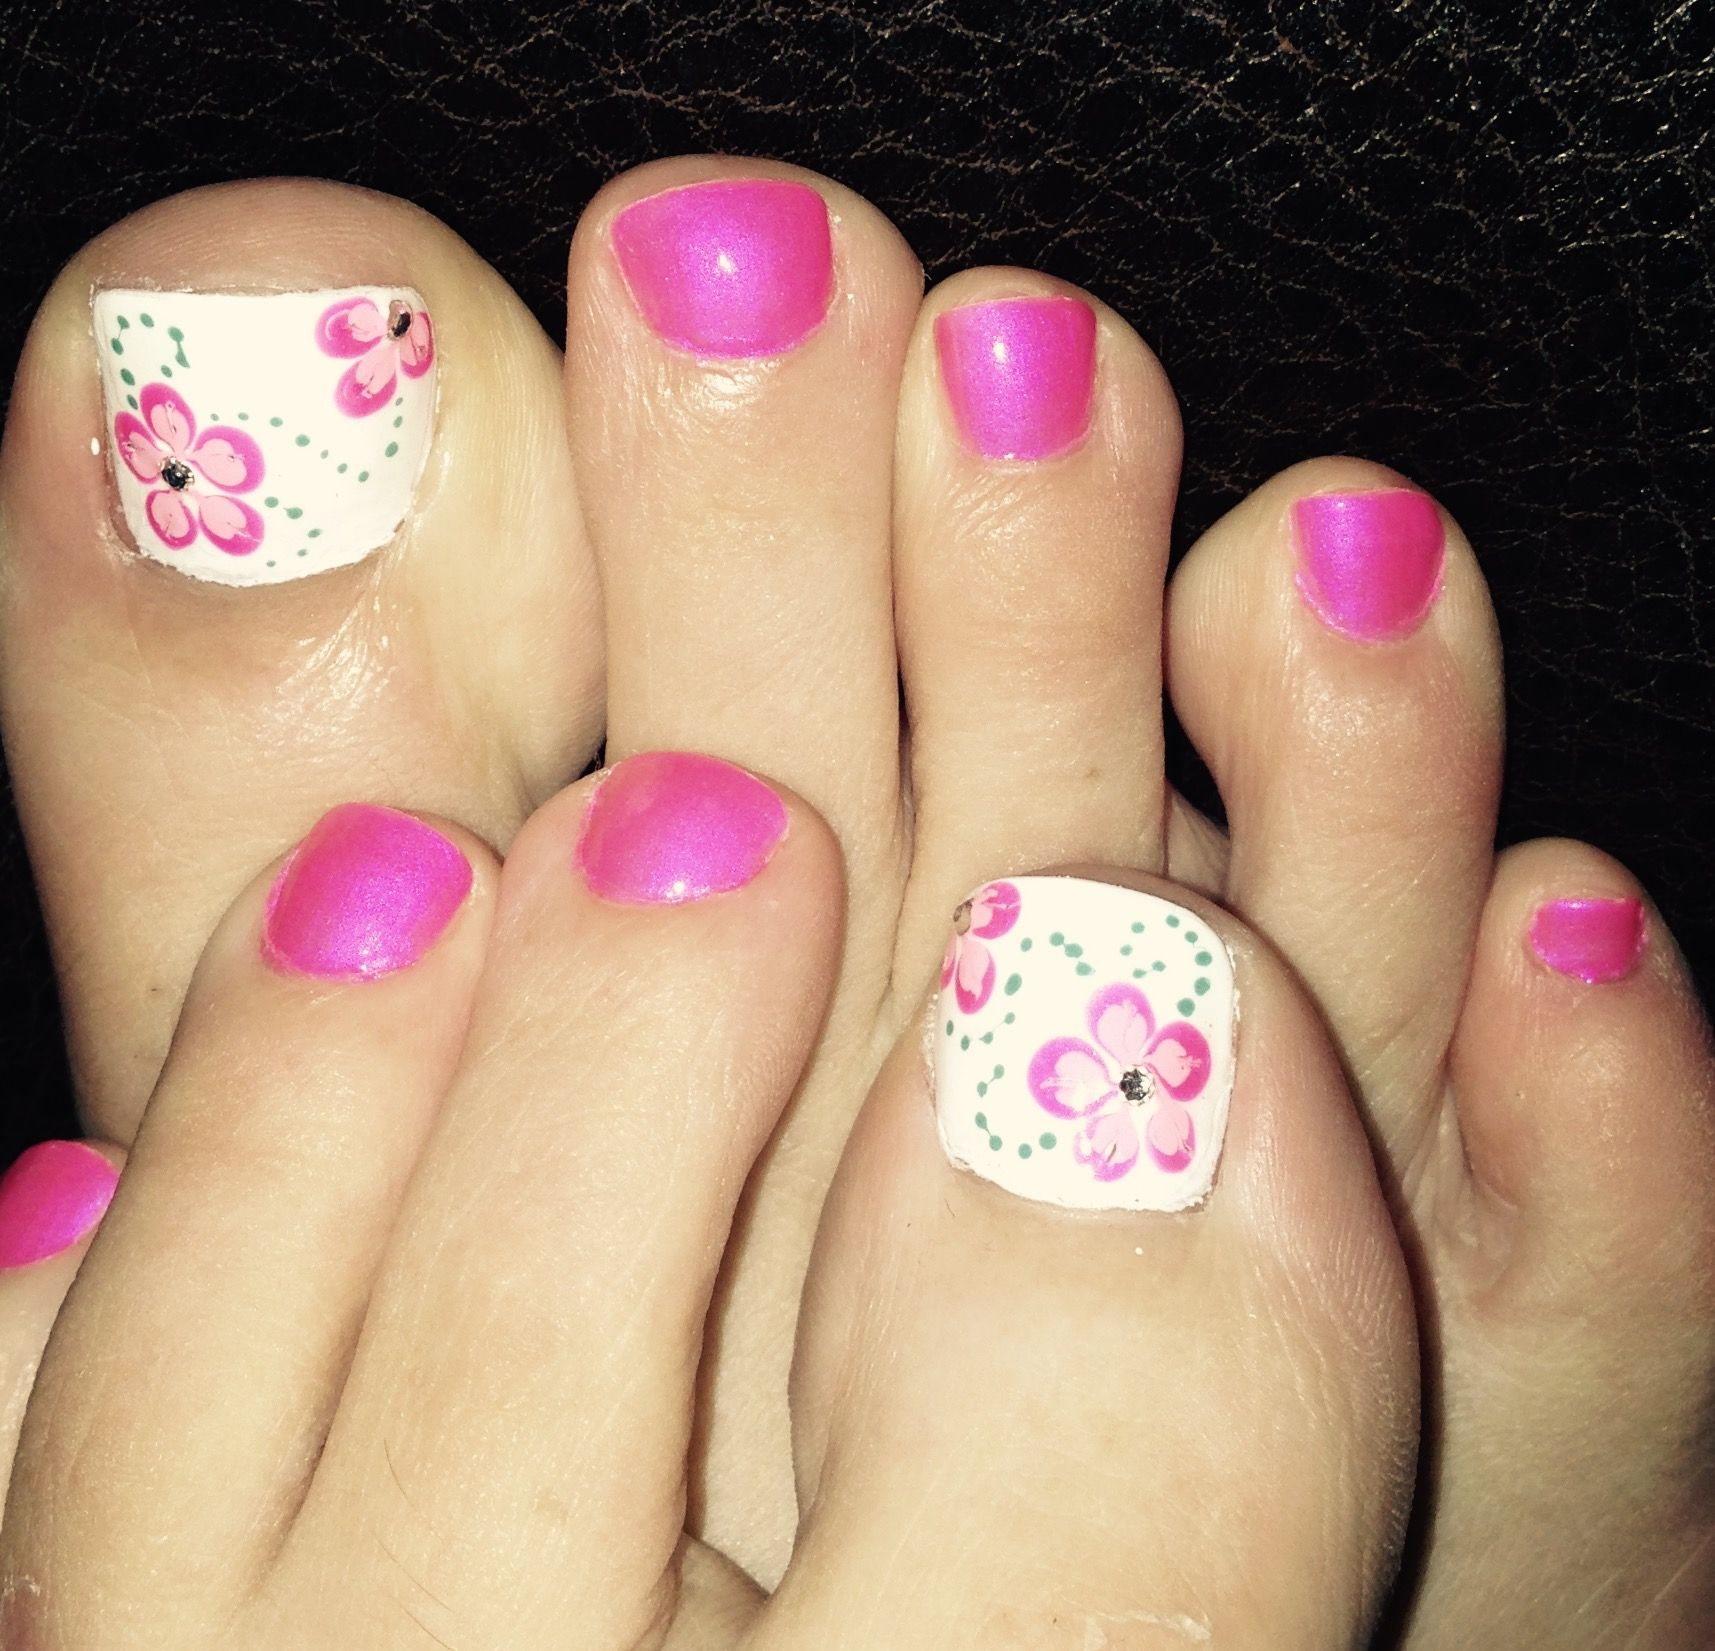 Toe Nail Design For Summer Pink White Flowers Toenail Art Designs Toe Nail Designs Flower Toe Nails